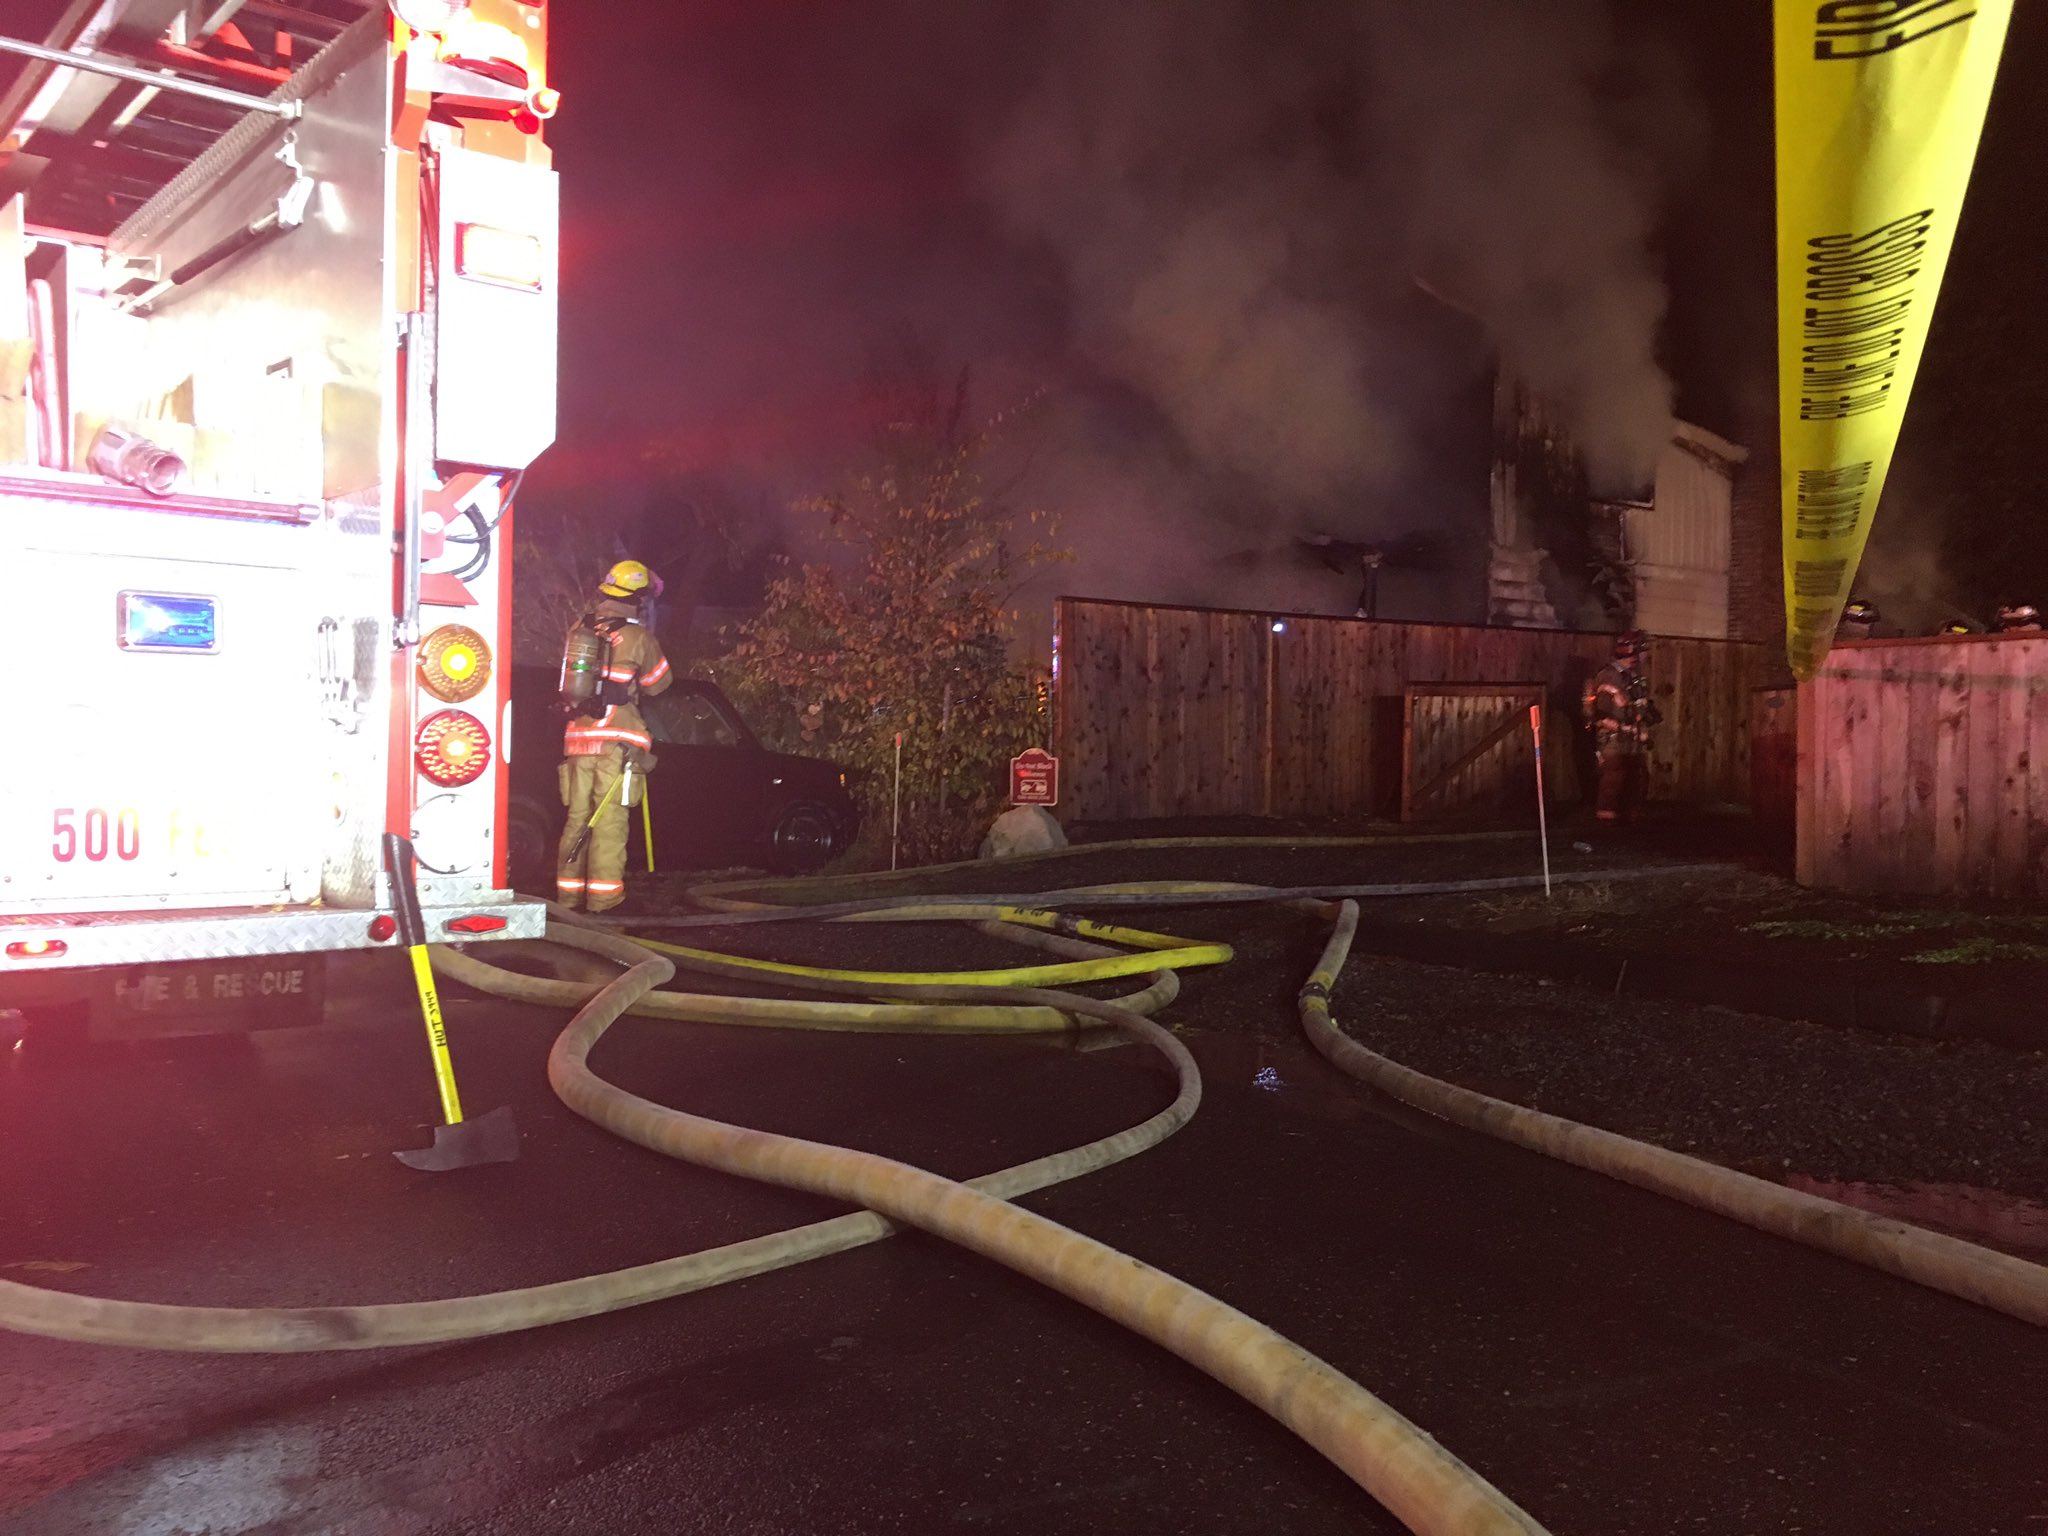 A house fire in the 5000 block of NE Alberta Court caused officials to close the road on Friday, Oct. 13, 2017. (SBG photo)